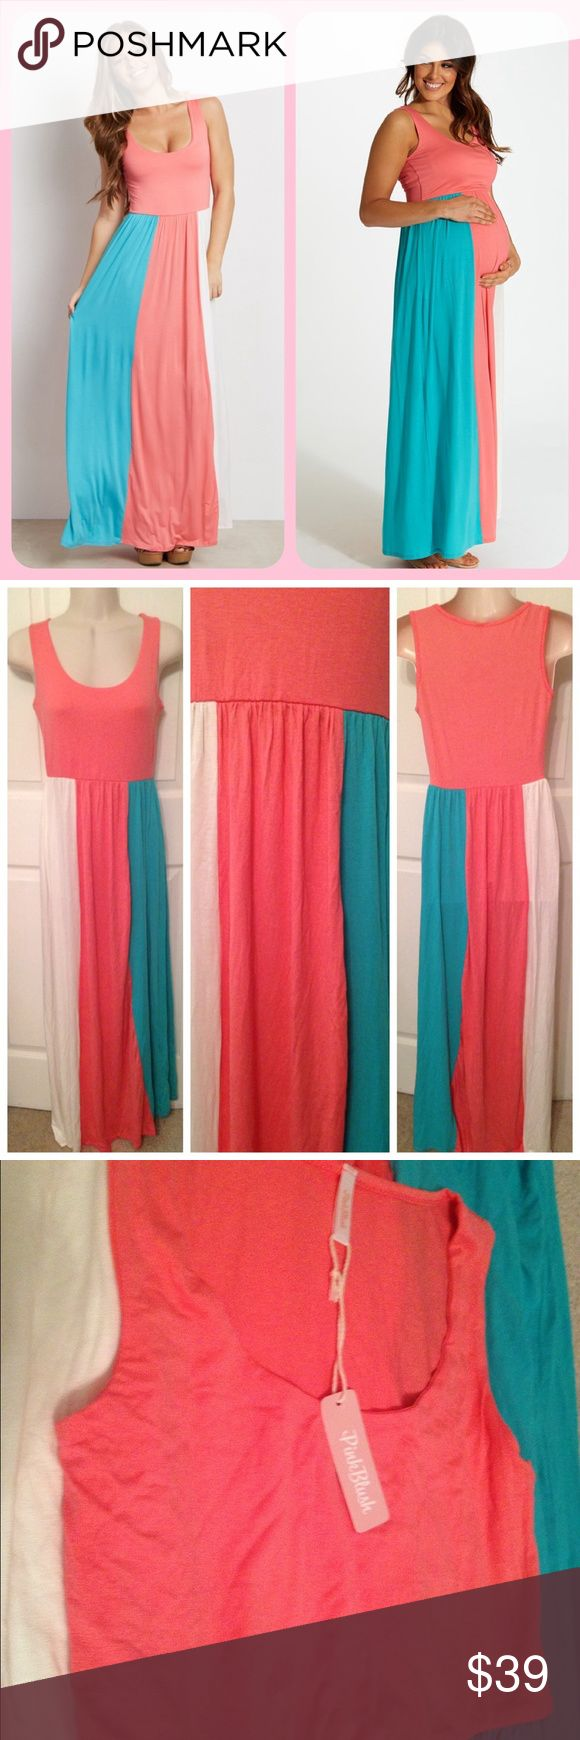 NWT PinkBlush Neapolitan style Maxi - super soft! Brand new w/ tag maxi dress by Pink Blush.  This is marketed towards BOTH pregnant and non-pregnant ladies - the super soft & stretchy  Viscose/Spandex material can work great as a maternity dress, or simply as a normal dress for those who are not preggo ☺️.  Colorblock style coral pink, cream white, + aqua mint green.  Really lovely! Comfy stretch so it could work for a Small to Medium.  Could be used for a baby shower boy or girl gender…